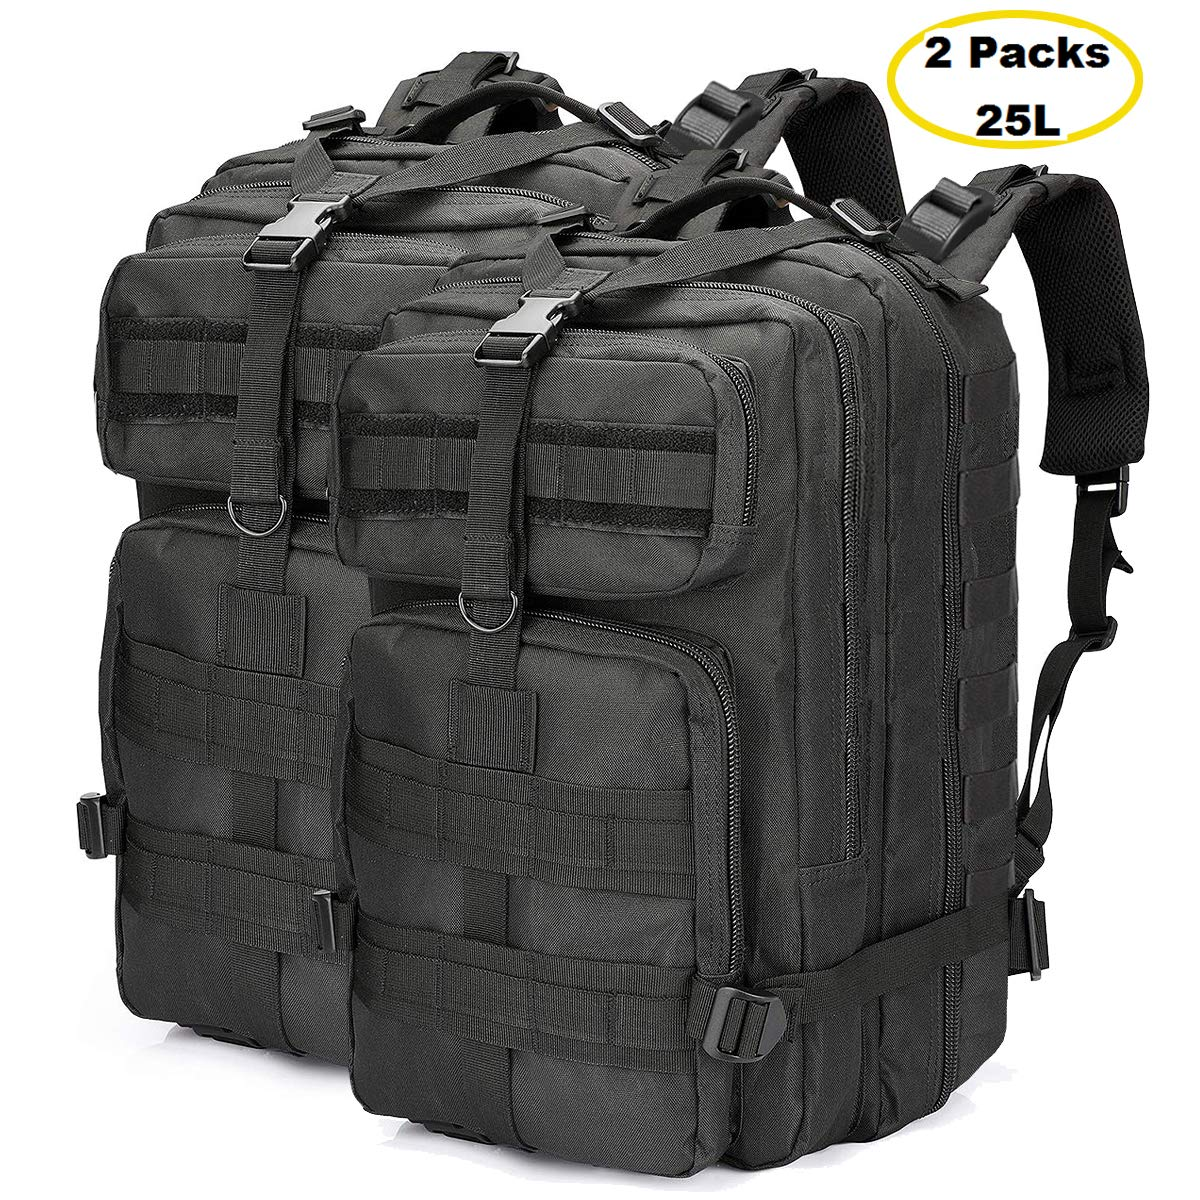 ALTBP Military Tactical Backpack, Sports Fan Backpack Army Assault Rucksack Backpack Molle BugOut Backpack, Hydration Backpack for Outdoor Hiking Camping Trekking Hunting(Black Upgraded 2Pack, 25L) by ALTBP